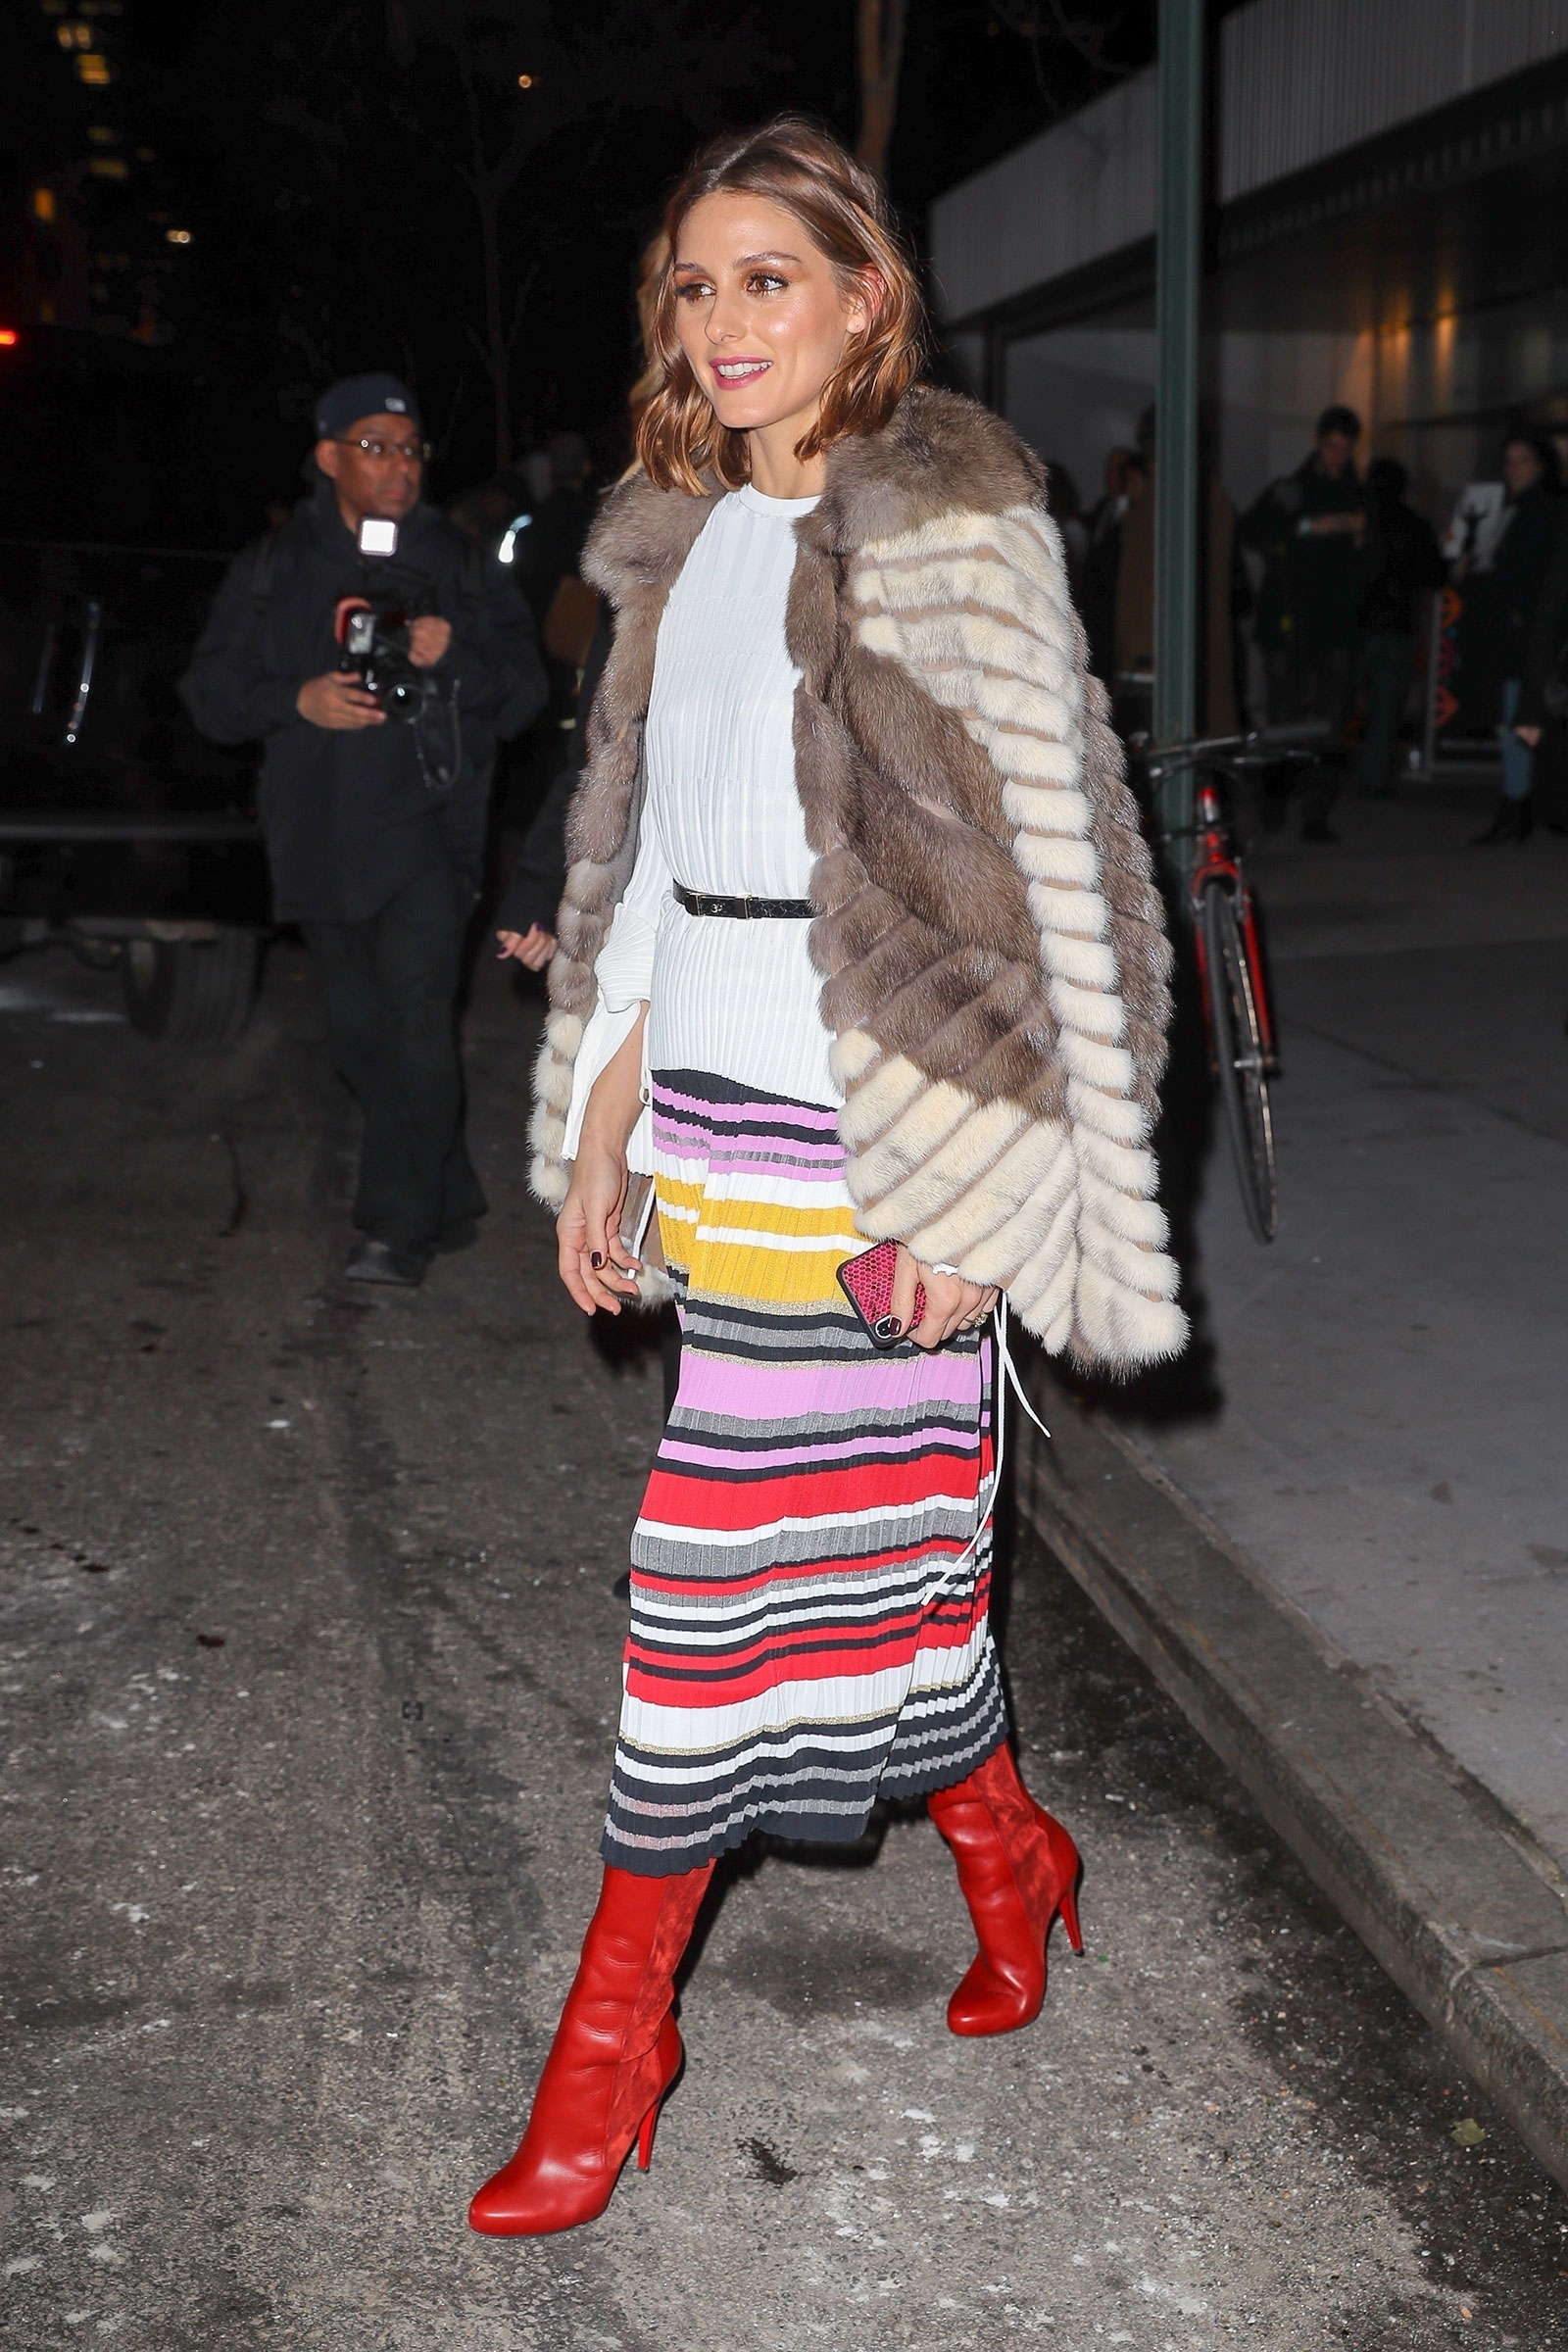 Olivia Palermo attends the Carolina Herrera show at NYFW in a striped midi skirt, tall red boots and fur cape.